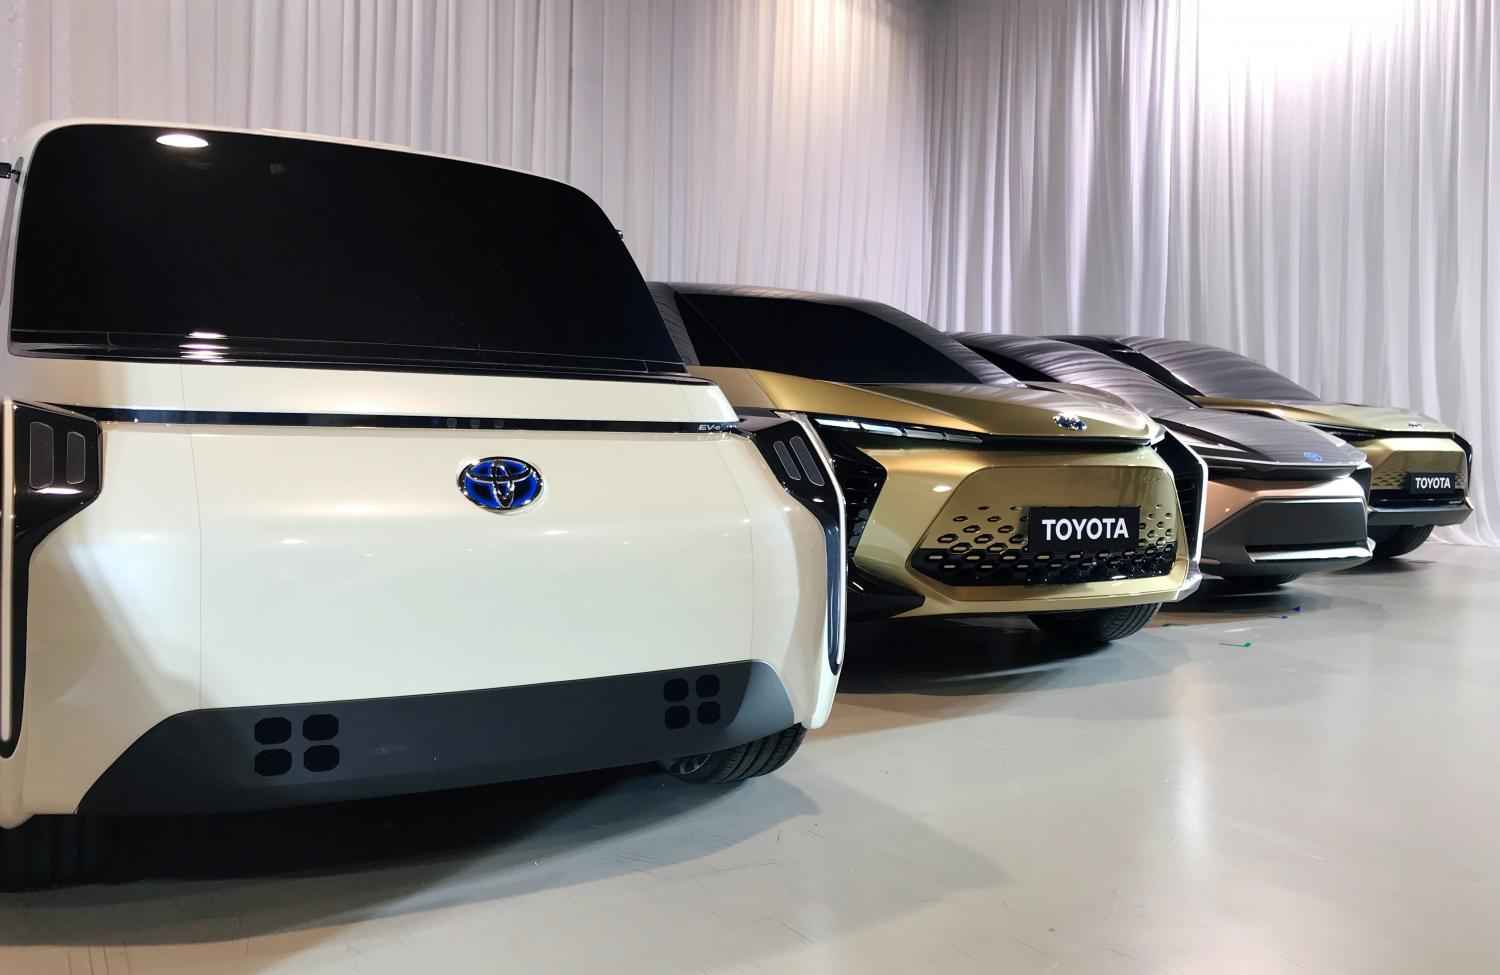 Toyota Motor Corp displays concept versions of its next-generation electric vehicles at a news briefing in Tokyo on Friday.